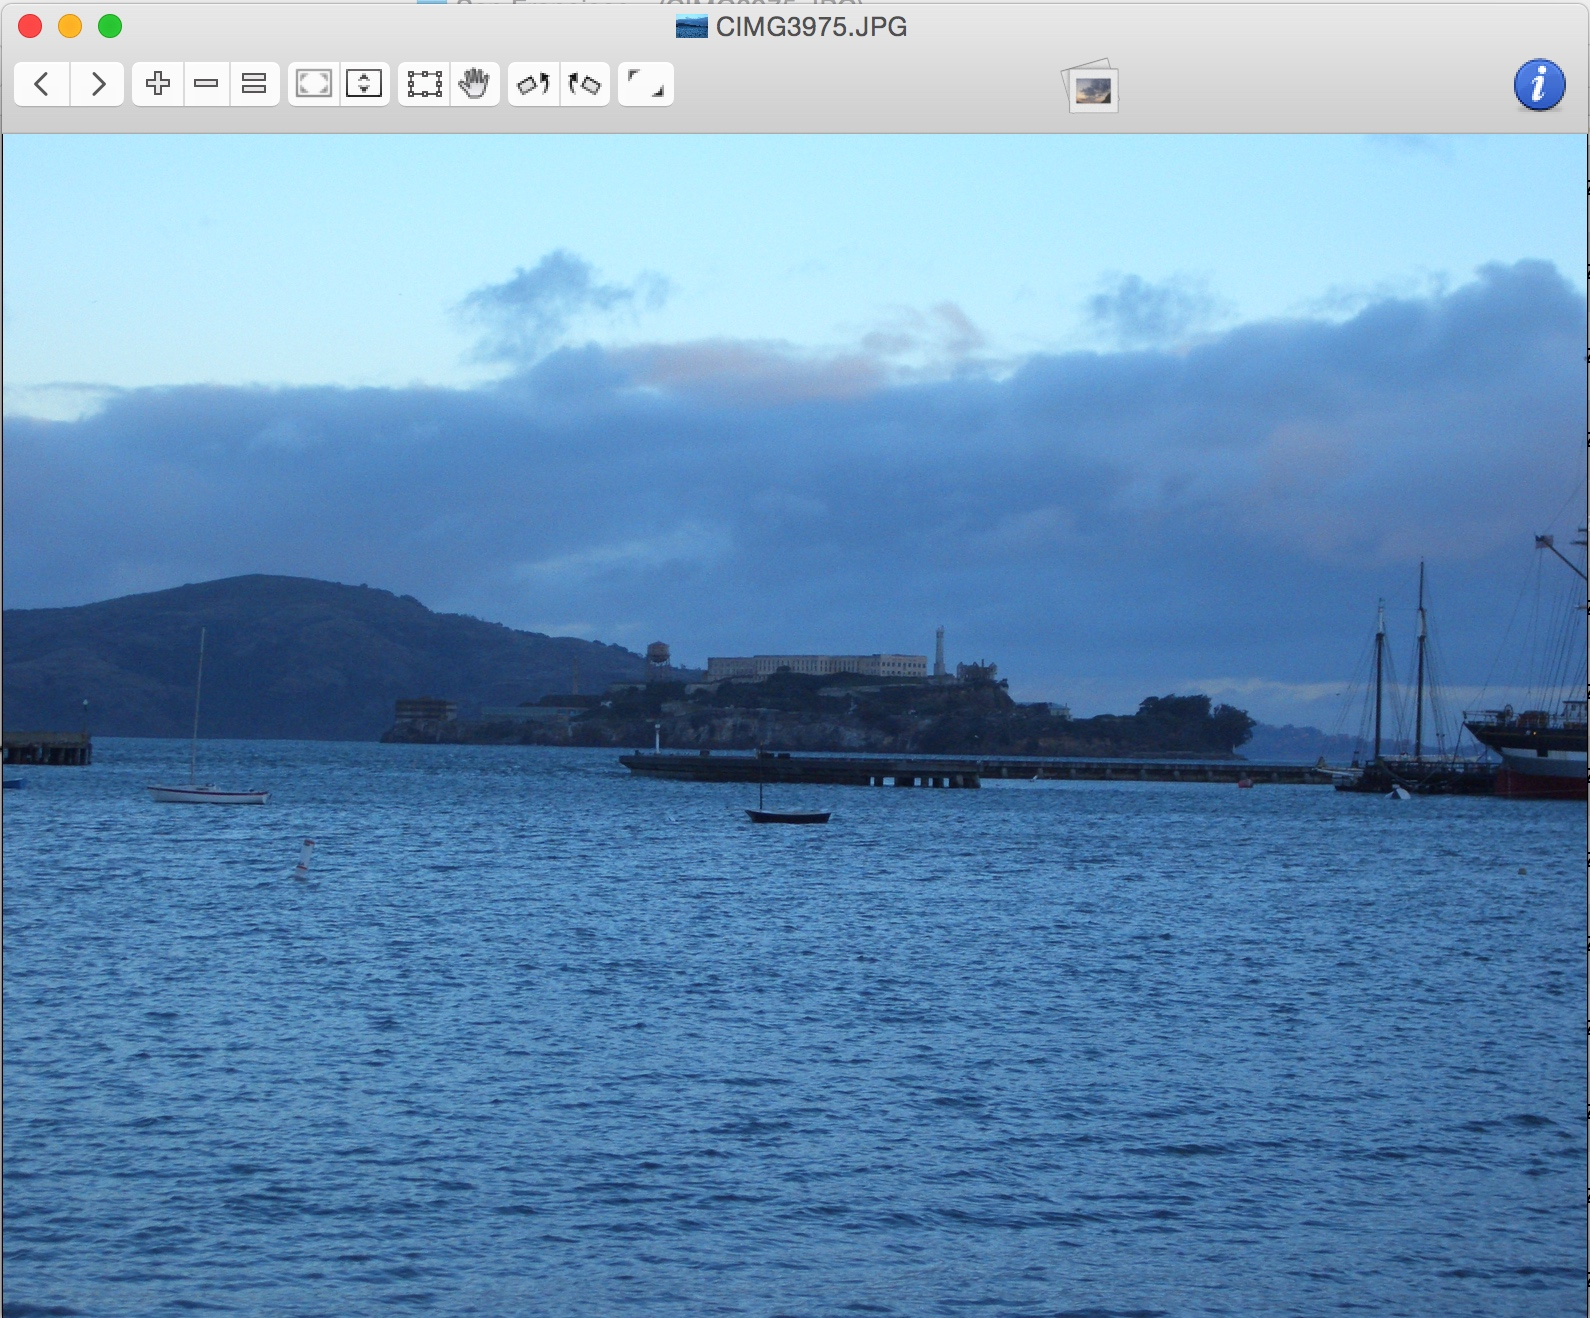 lyn_mac_osx_image_viewer